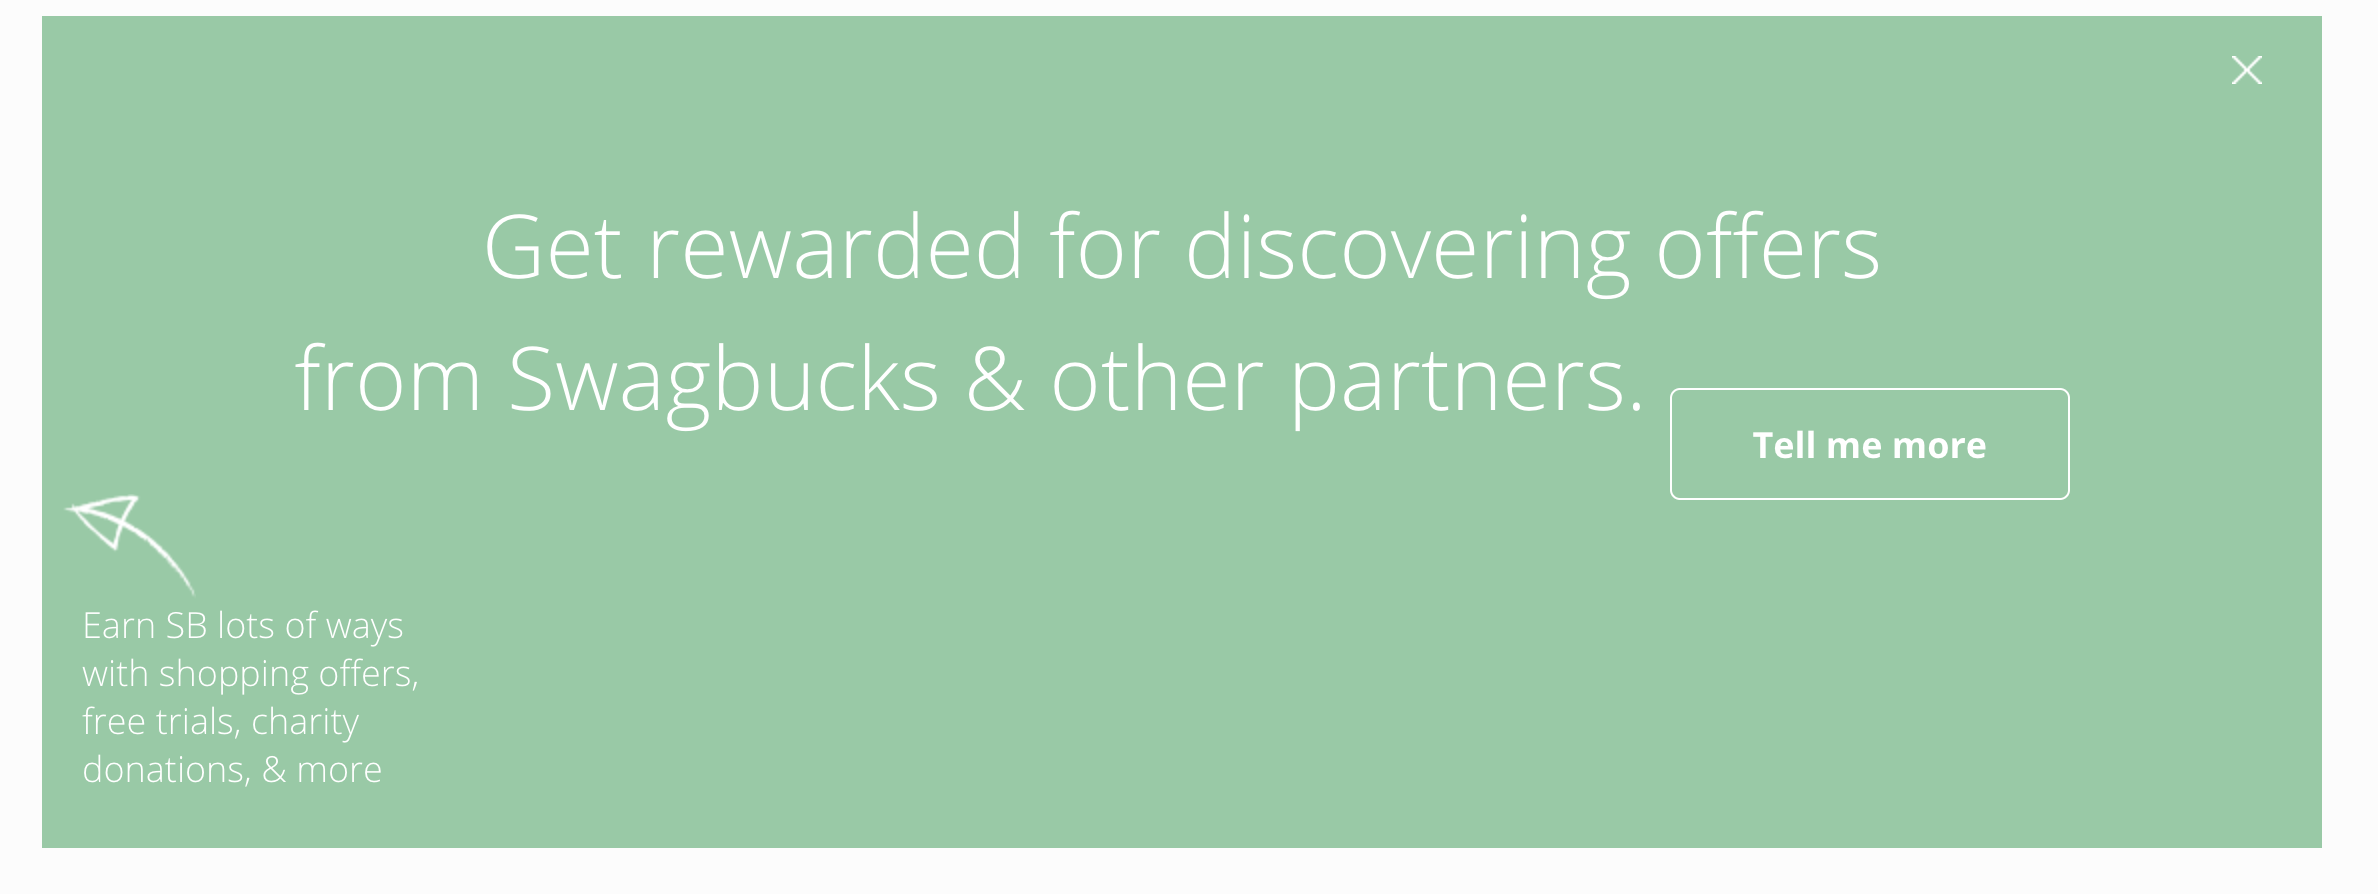 get rewarded for discovering offers from Swagbucks and other partners